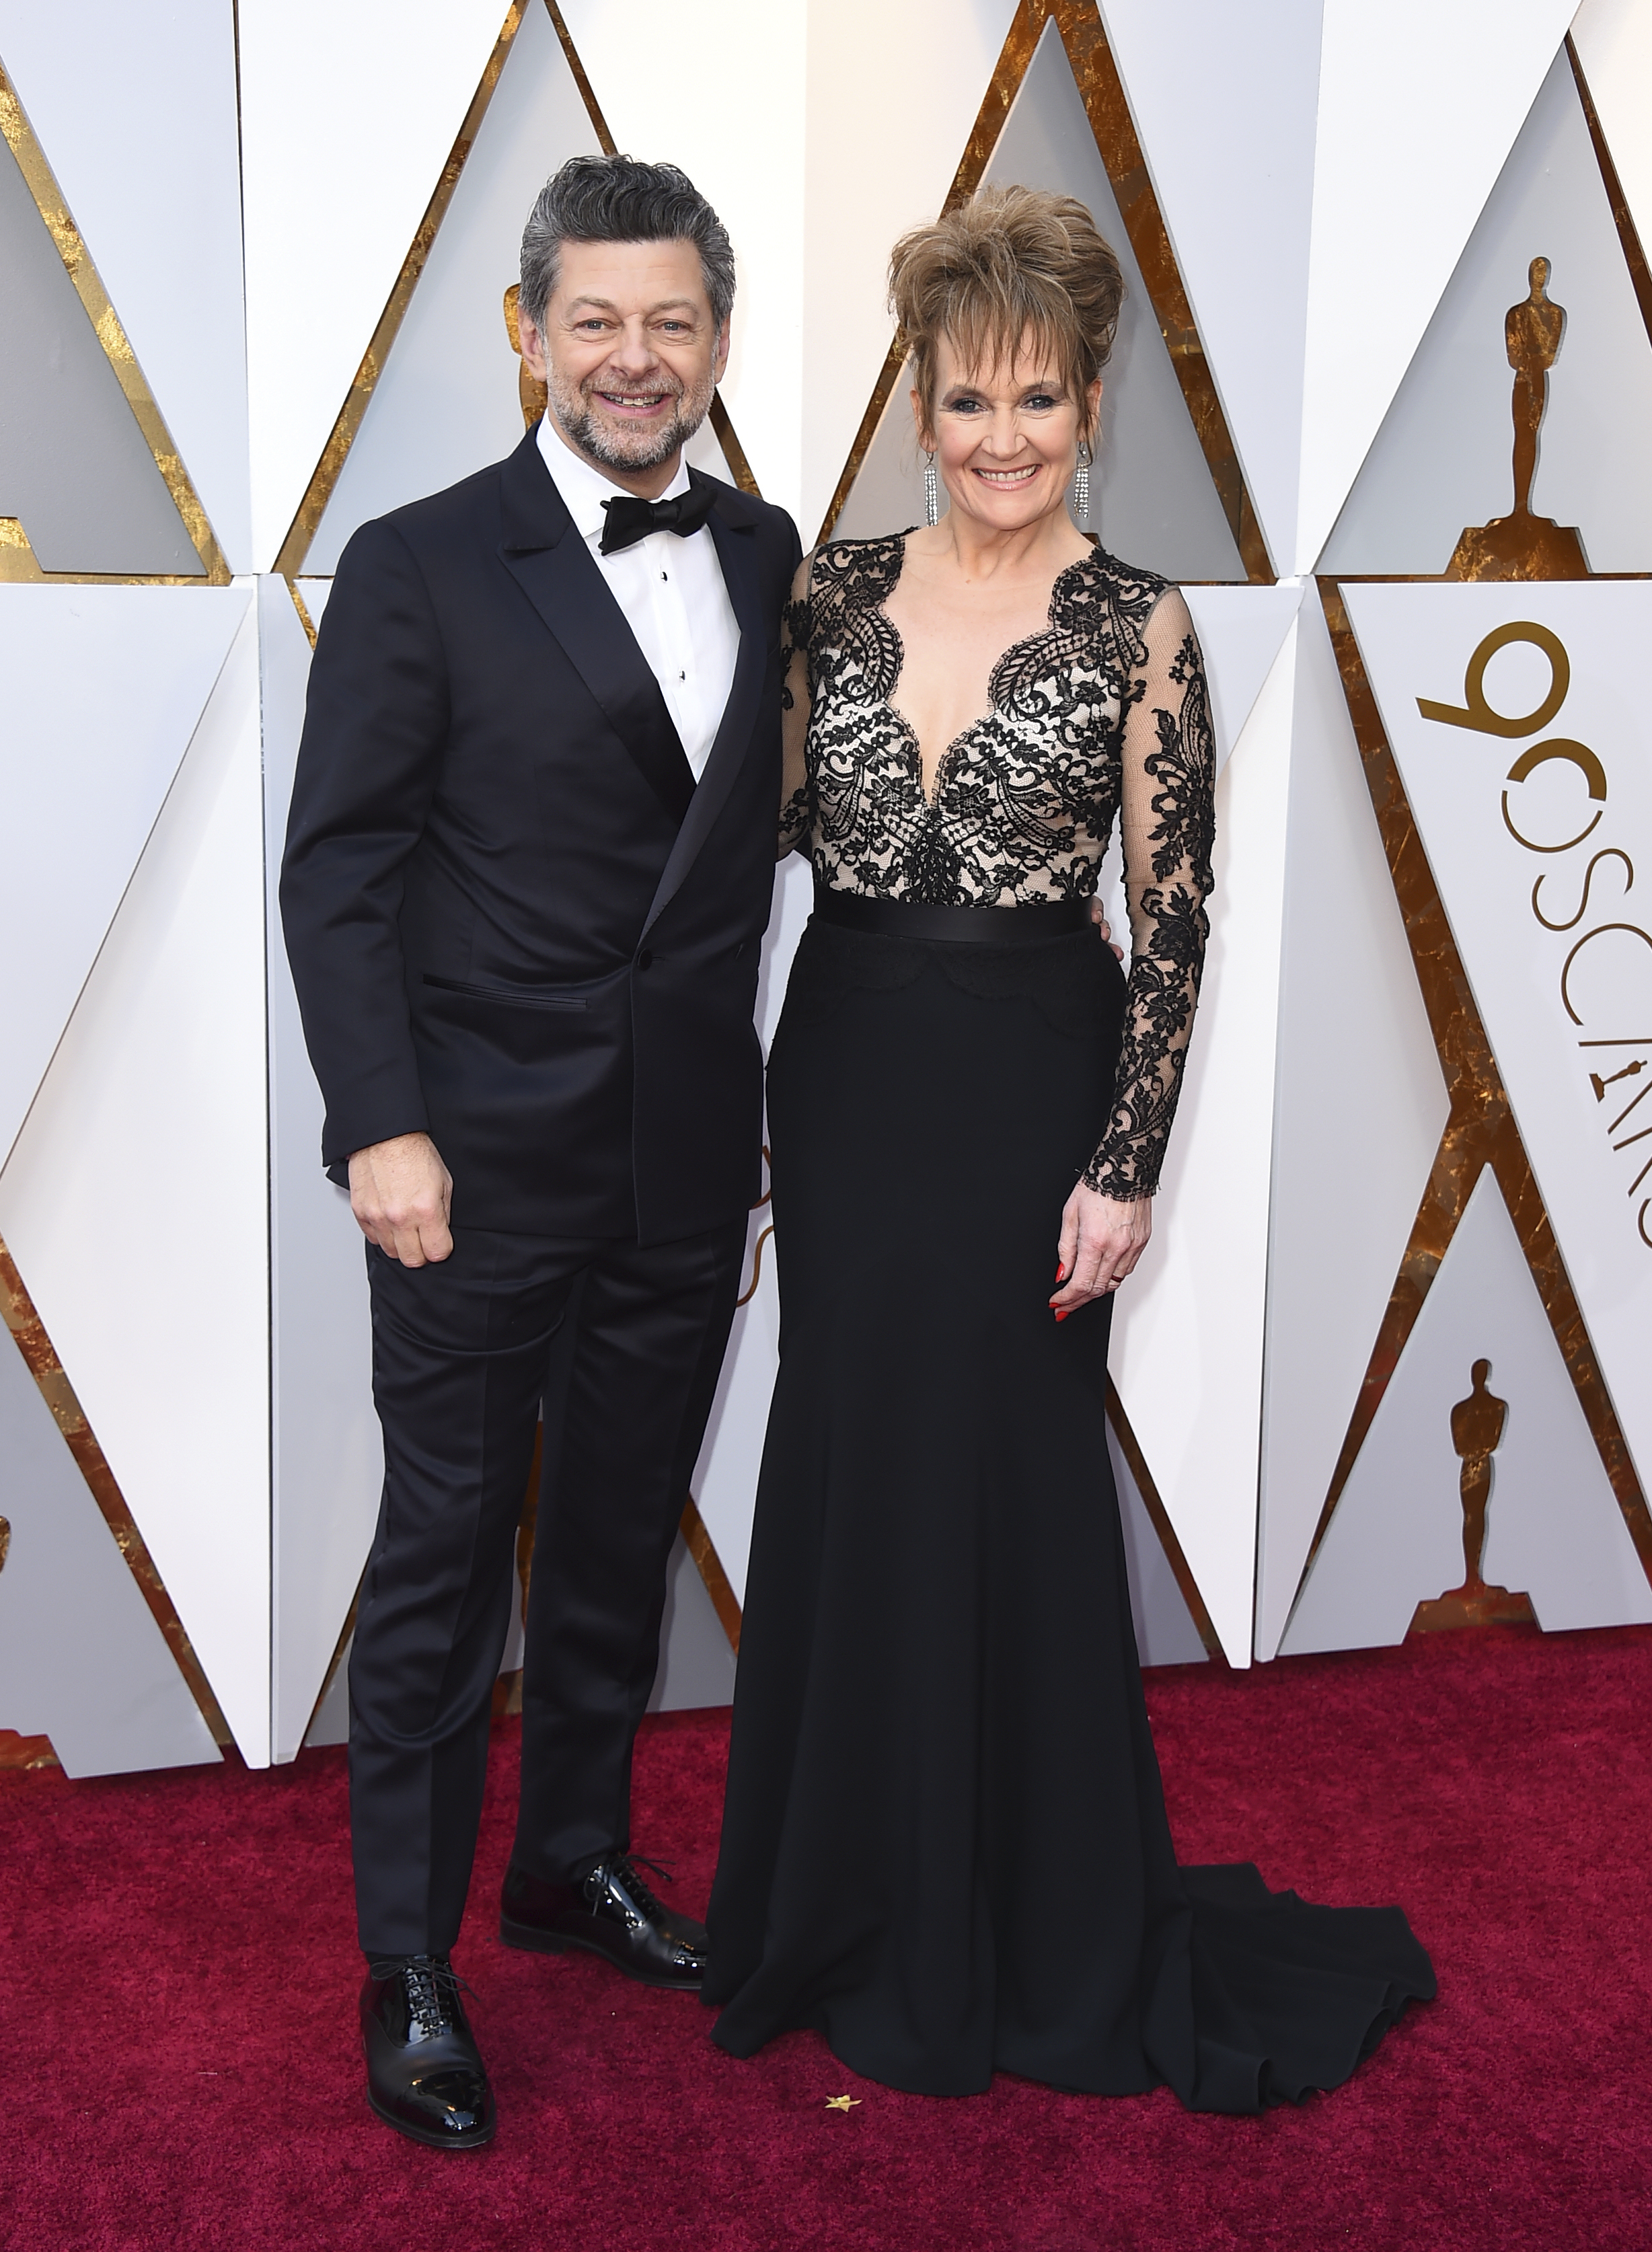 <div class='meta'><div class='origin-logo' data-origin='none'></div><span class='caption-text' data-credit='Jordan Strauss/Invision/AP'>Andy Serkis, left, and Lorraine Ashbourne arrive at the Oscars on Sunday, March 4, 2018, at the Dolby Theatre in Los Angeles.</span></div>